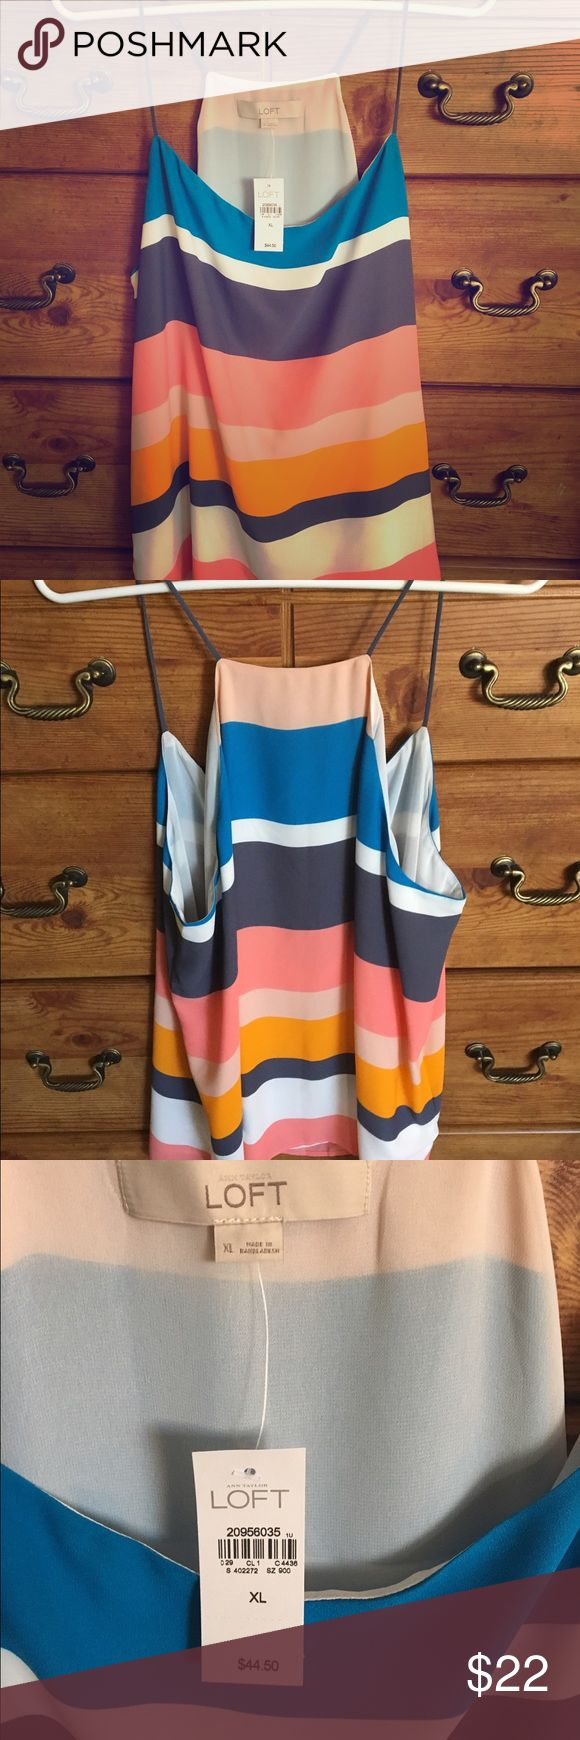 NWT Loft Strappy Racerback Dpuble Chiffon Cami Adorable NEW WITH TAGS Loft strappy racerback double chiffon cami! Beautiful alone or layered under a blazer or cardigan. Bright and beautiful stripes! LOFT Tops Camisoles